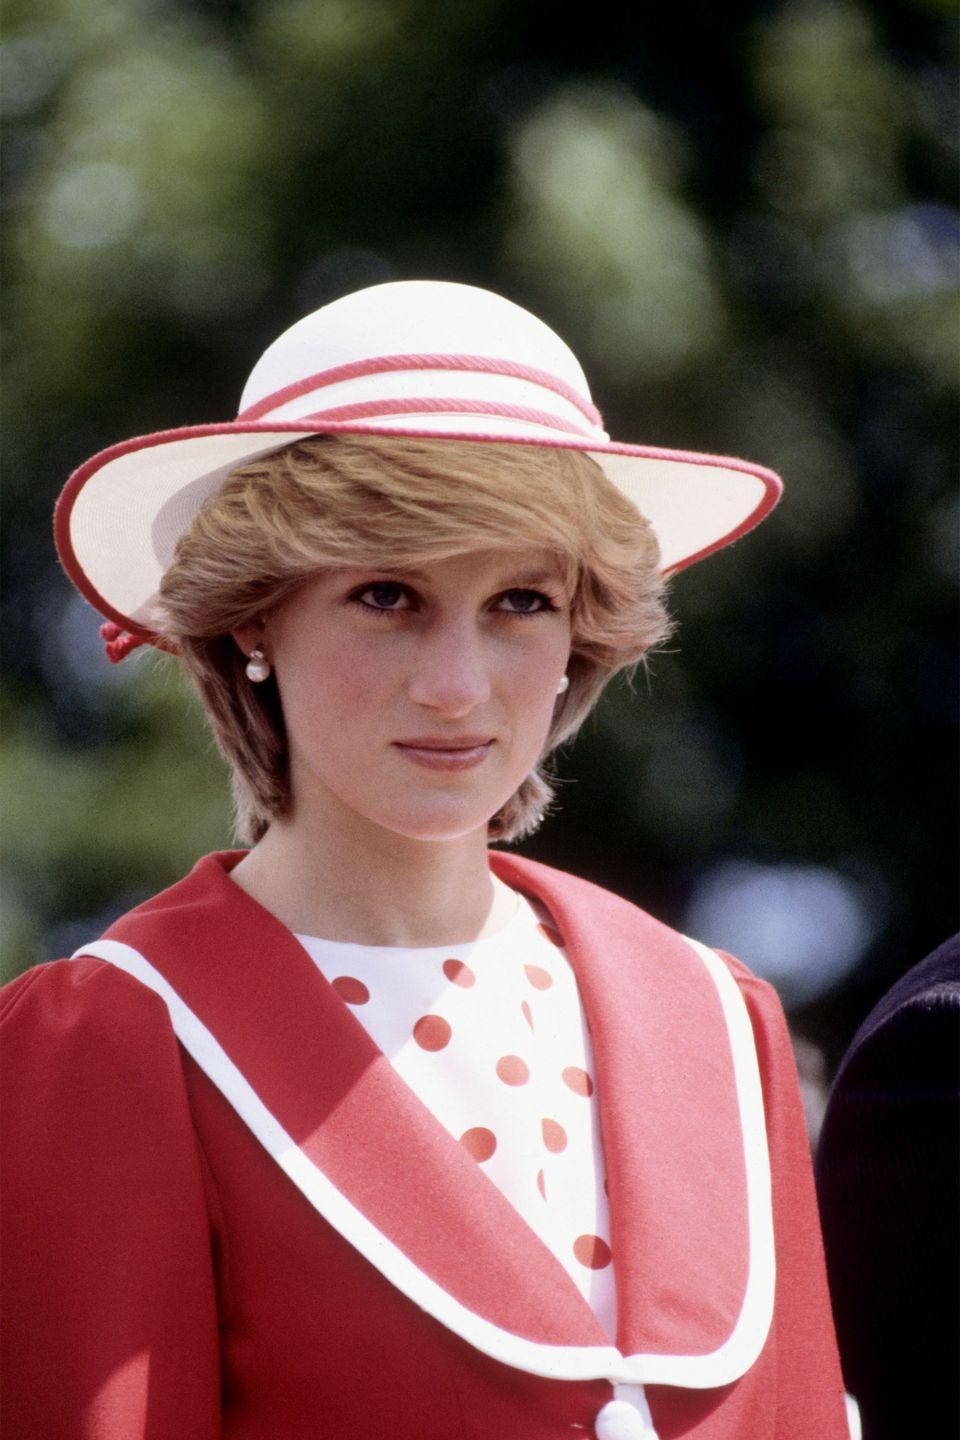 <p>In a polka-dot top, red jacket and matching hat during the Royal Tour of Canada.</p>